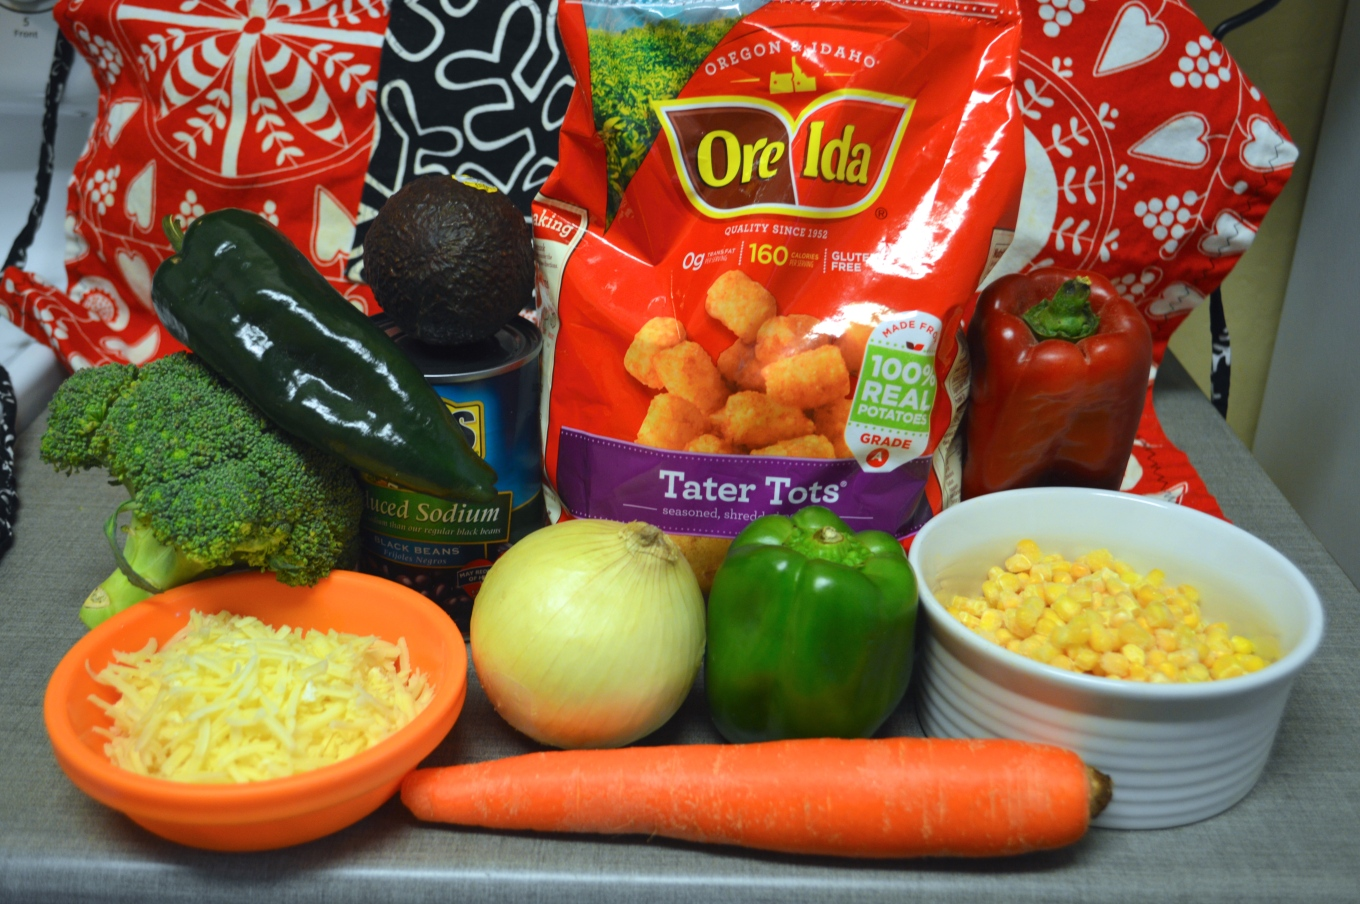 Image shows a bag of Ore-Ida frozen tots at the center with raw veggetables including broccoli crown, onion, green and red bell peppers, carrot, frozen sweet corn in a white dish, a poblano pepper, an avocado, and a can of black beans.